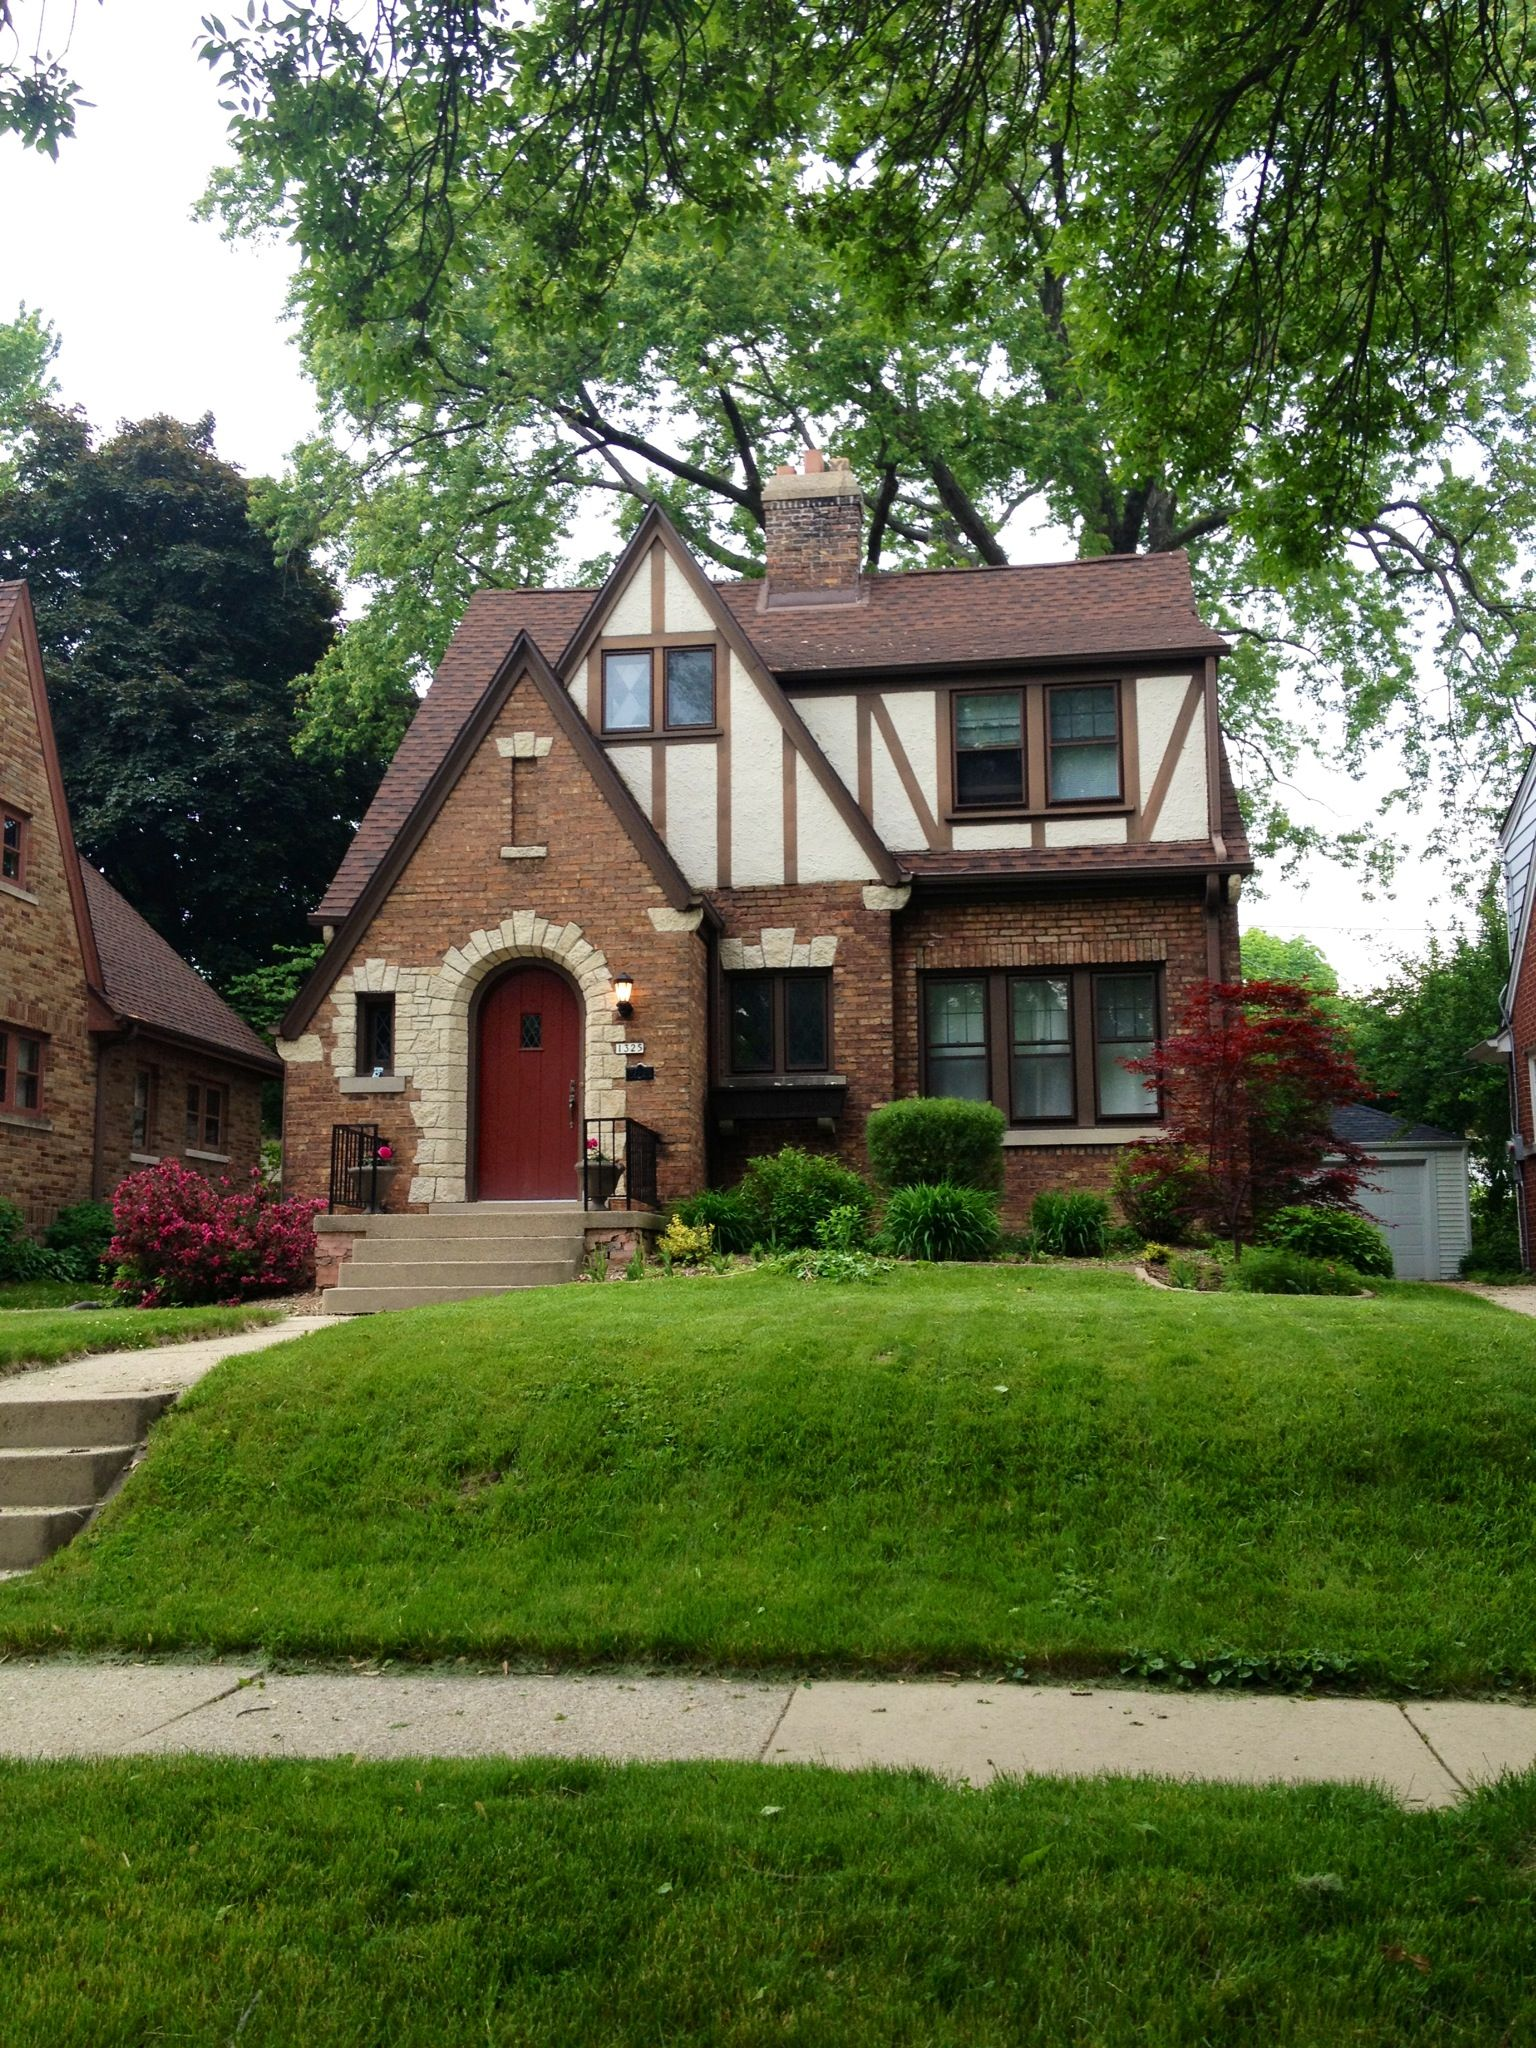 adorable tudor style home reminds me of sugarhouse ut